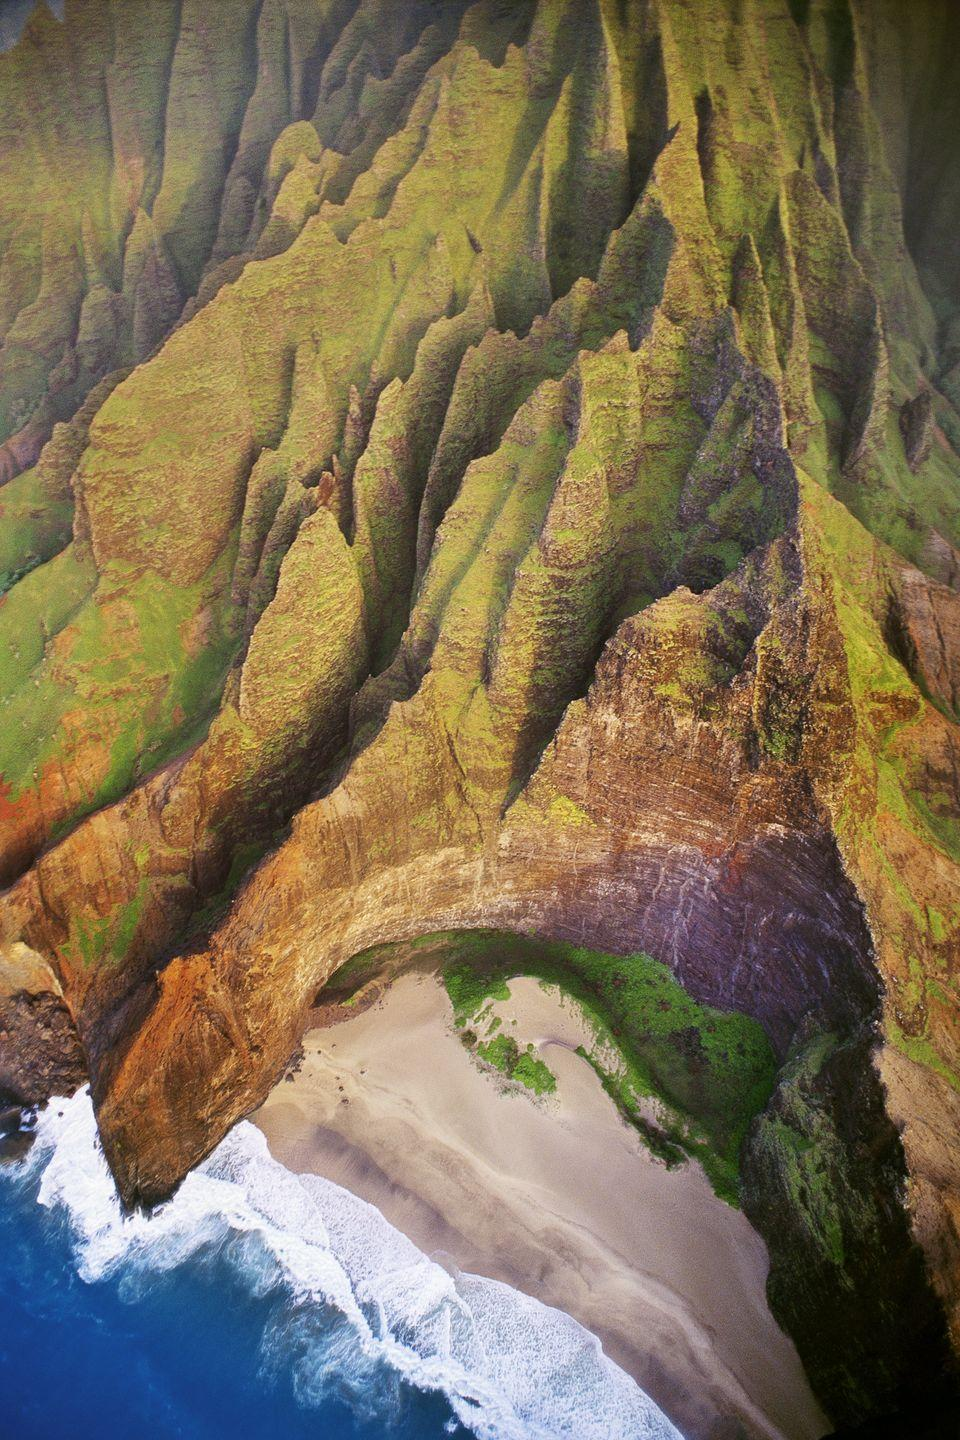 """<p><strong>Where: </strong><a href=""""https://go.redirectingat.com?id=74968X1596630&url=https%3A%2F%2Fwww.tripadvisor.com%2FTourism-g29218-Kauai_Hawaii-Vacations.html&sref=https%3A%2F%2Fwww.bestproducts.com%2Flifestyle%2Fg35651279%2Fmost-beautiful-places-in-america%2F"""" rel=""""nofollow noopener"""" target=""""_blank"""" data-ylk=""""slk:Honopu Beach, Hawaii"""" class=""""link rapid-noclick-resp"""">Honopu Beach, Hawaii</a></p><p><strong>Why We Love It: </strong>While there are too many <a href=""""https://www.countryliving.com/life/travel/g4033/best-beaches-in-usa/"""" rel=""""nofollow noopener"""" target=""""_blank"""" data-ylk=""""slk:beautiful beaches"""" class=""""link rapid-noclick-resp"""">beautiful beaches</a> in Hawaii to pick just one, the remoteness of this stretch of sand on Kauai's Na Pali Coast make it one of our favorites.</p>"""